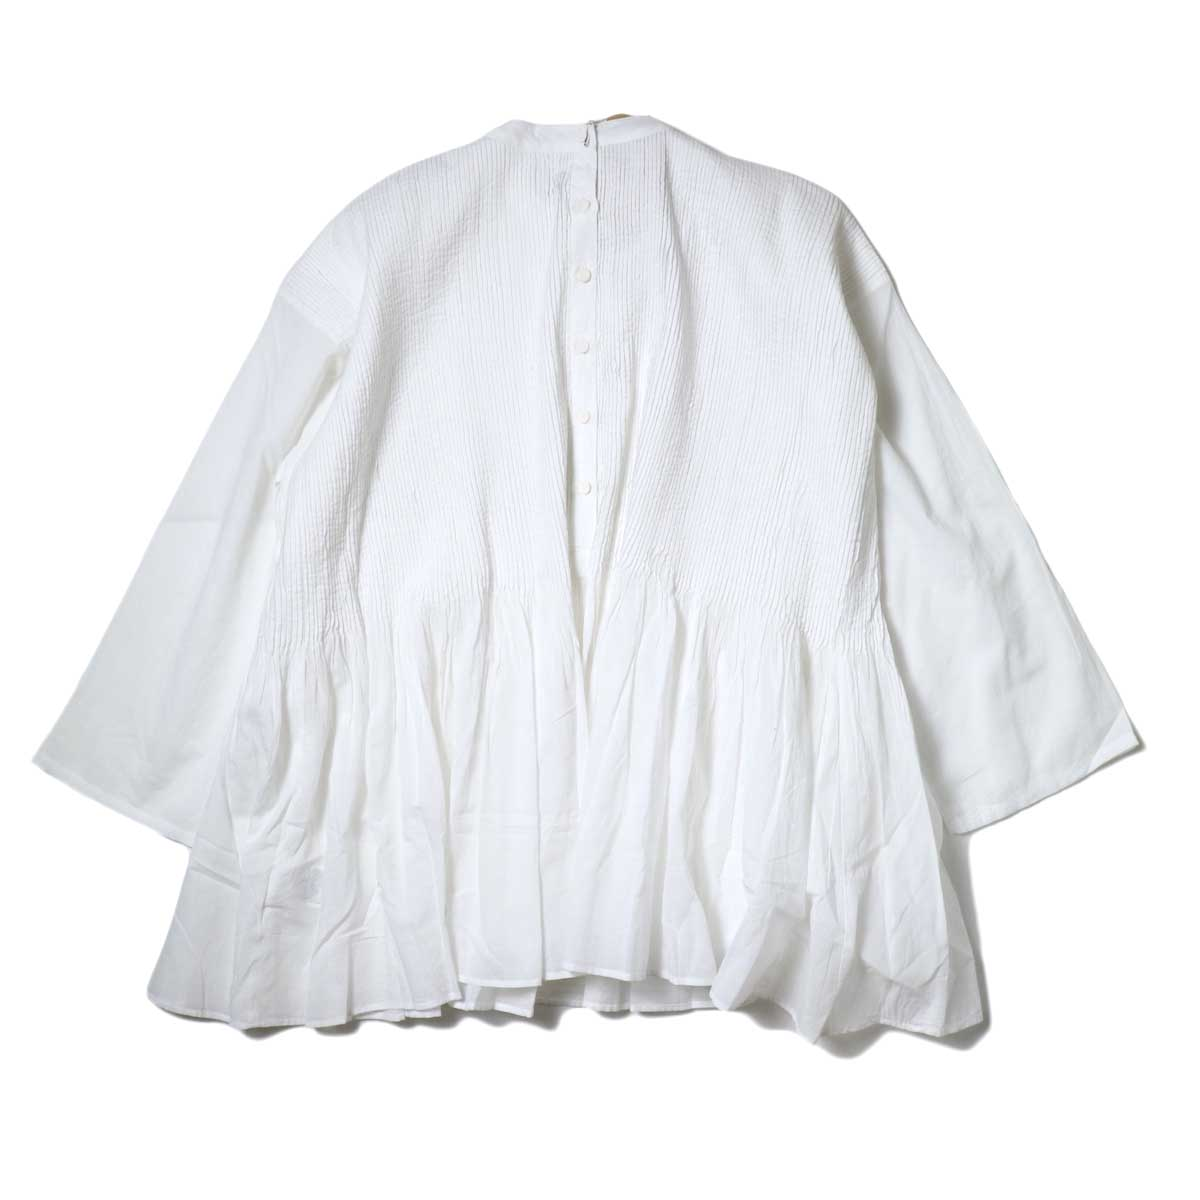 maison de soil / BACK OPENING STAND COLLAR SHIRT WITH MINI PINTUCK (White) 背面